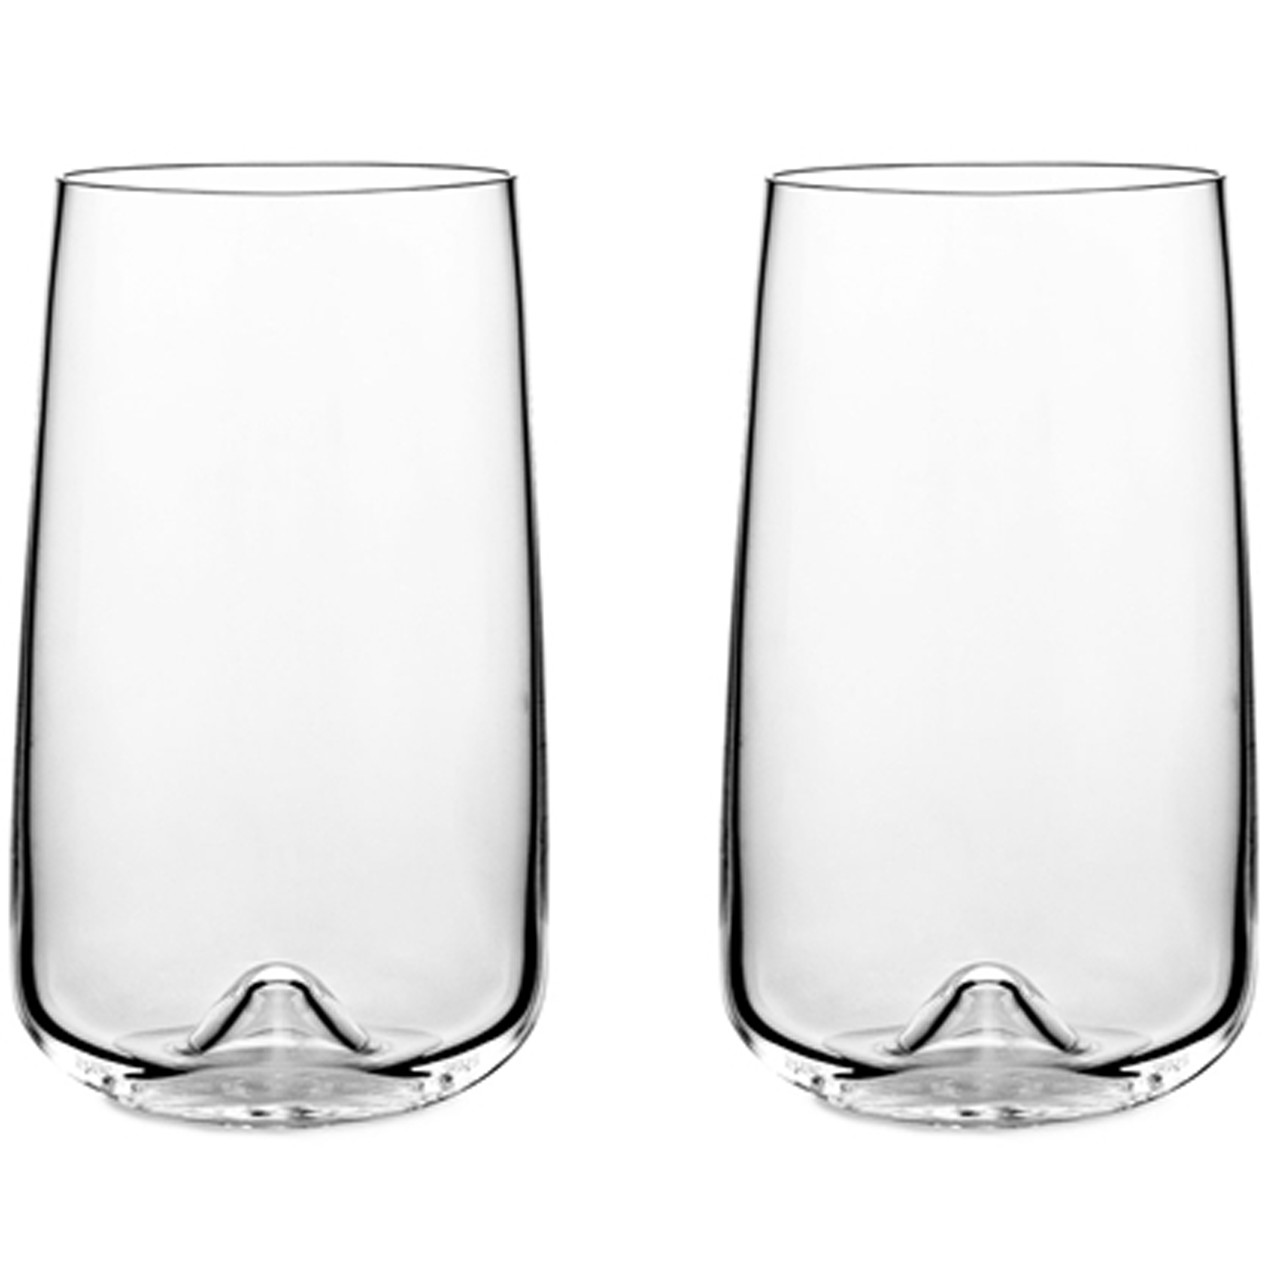 Normann Cph Long Drink Glas 2-pak – pris 299.00